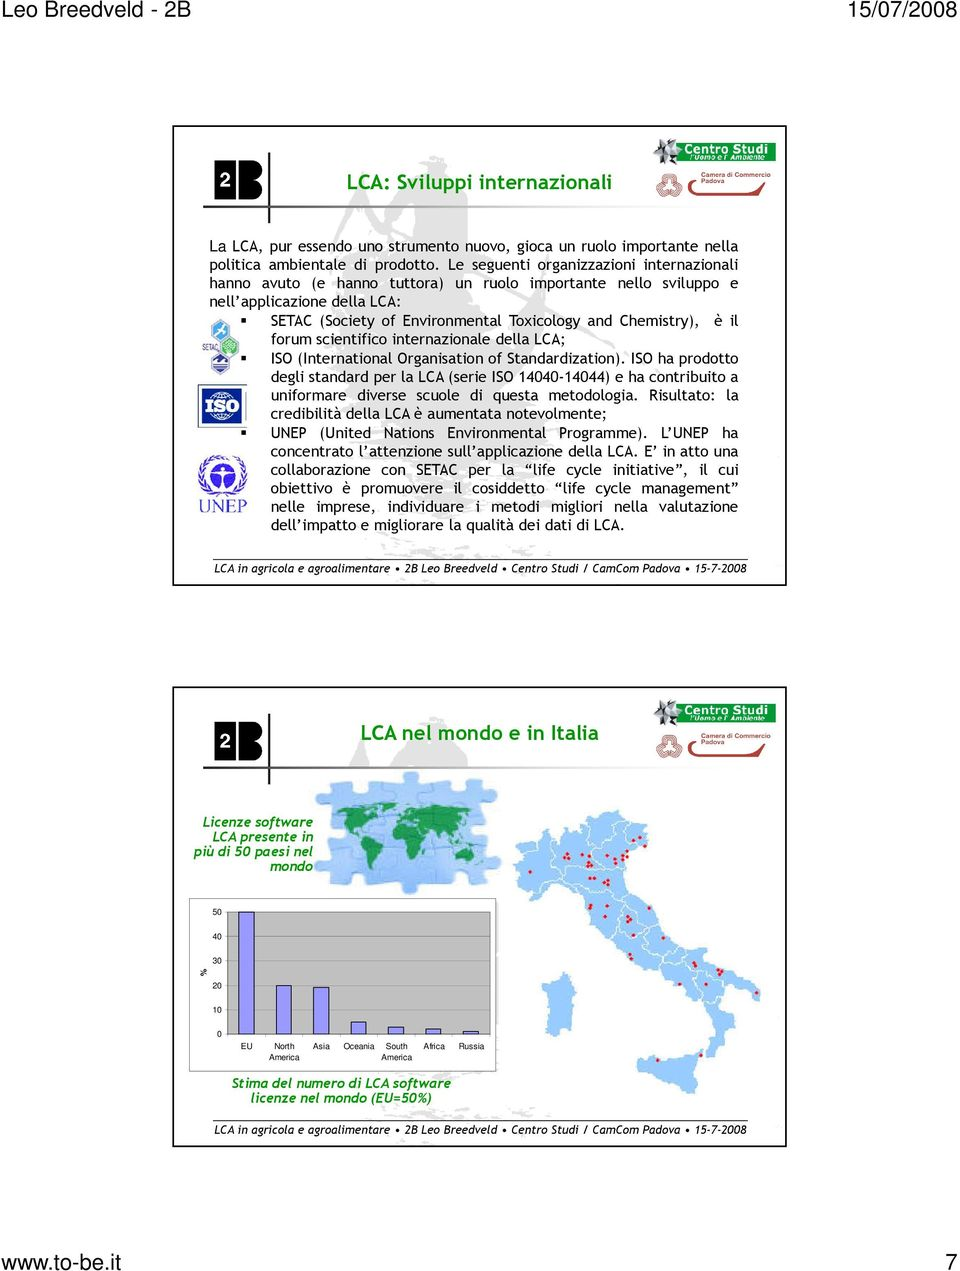 il forum scientifico internazionale della LCA; ISO (International Organisation of Standardization).